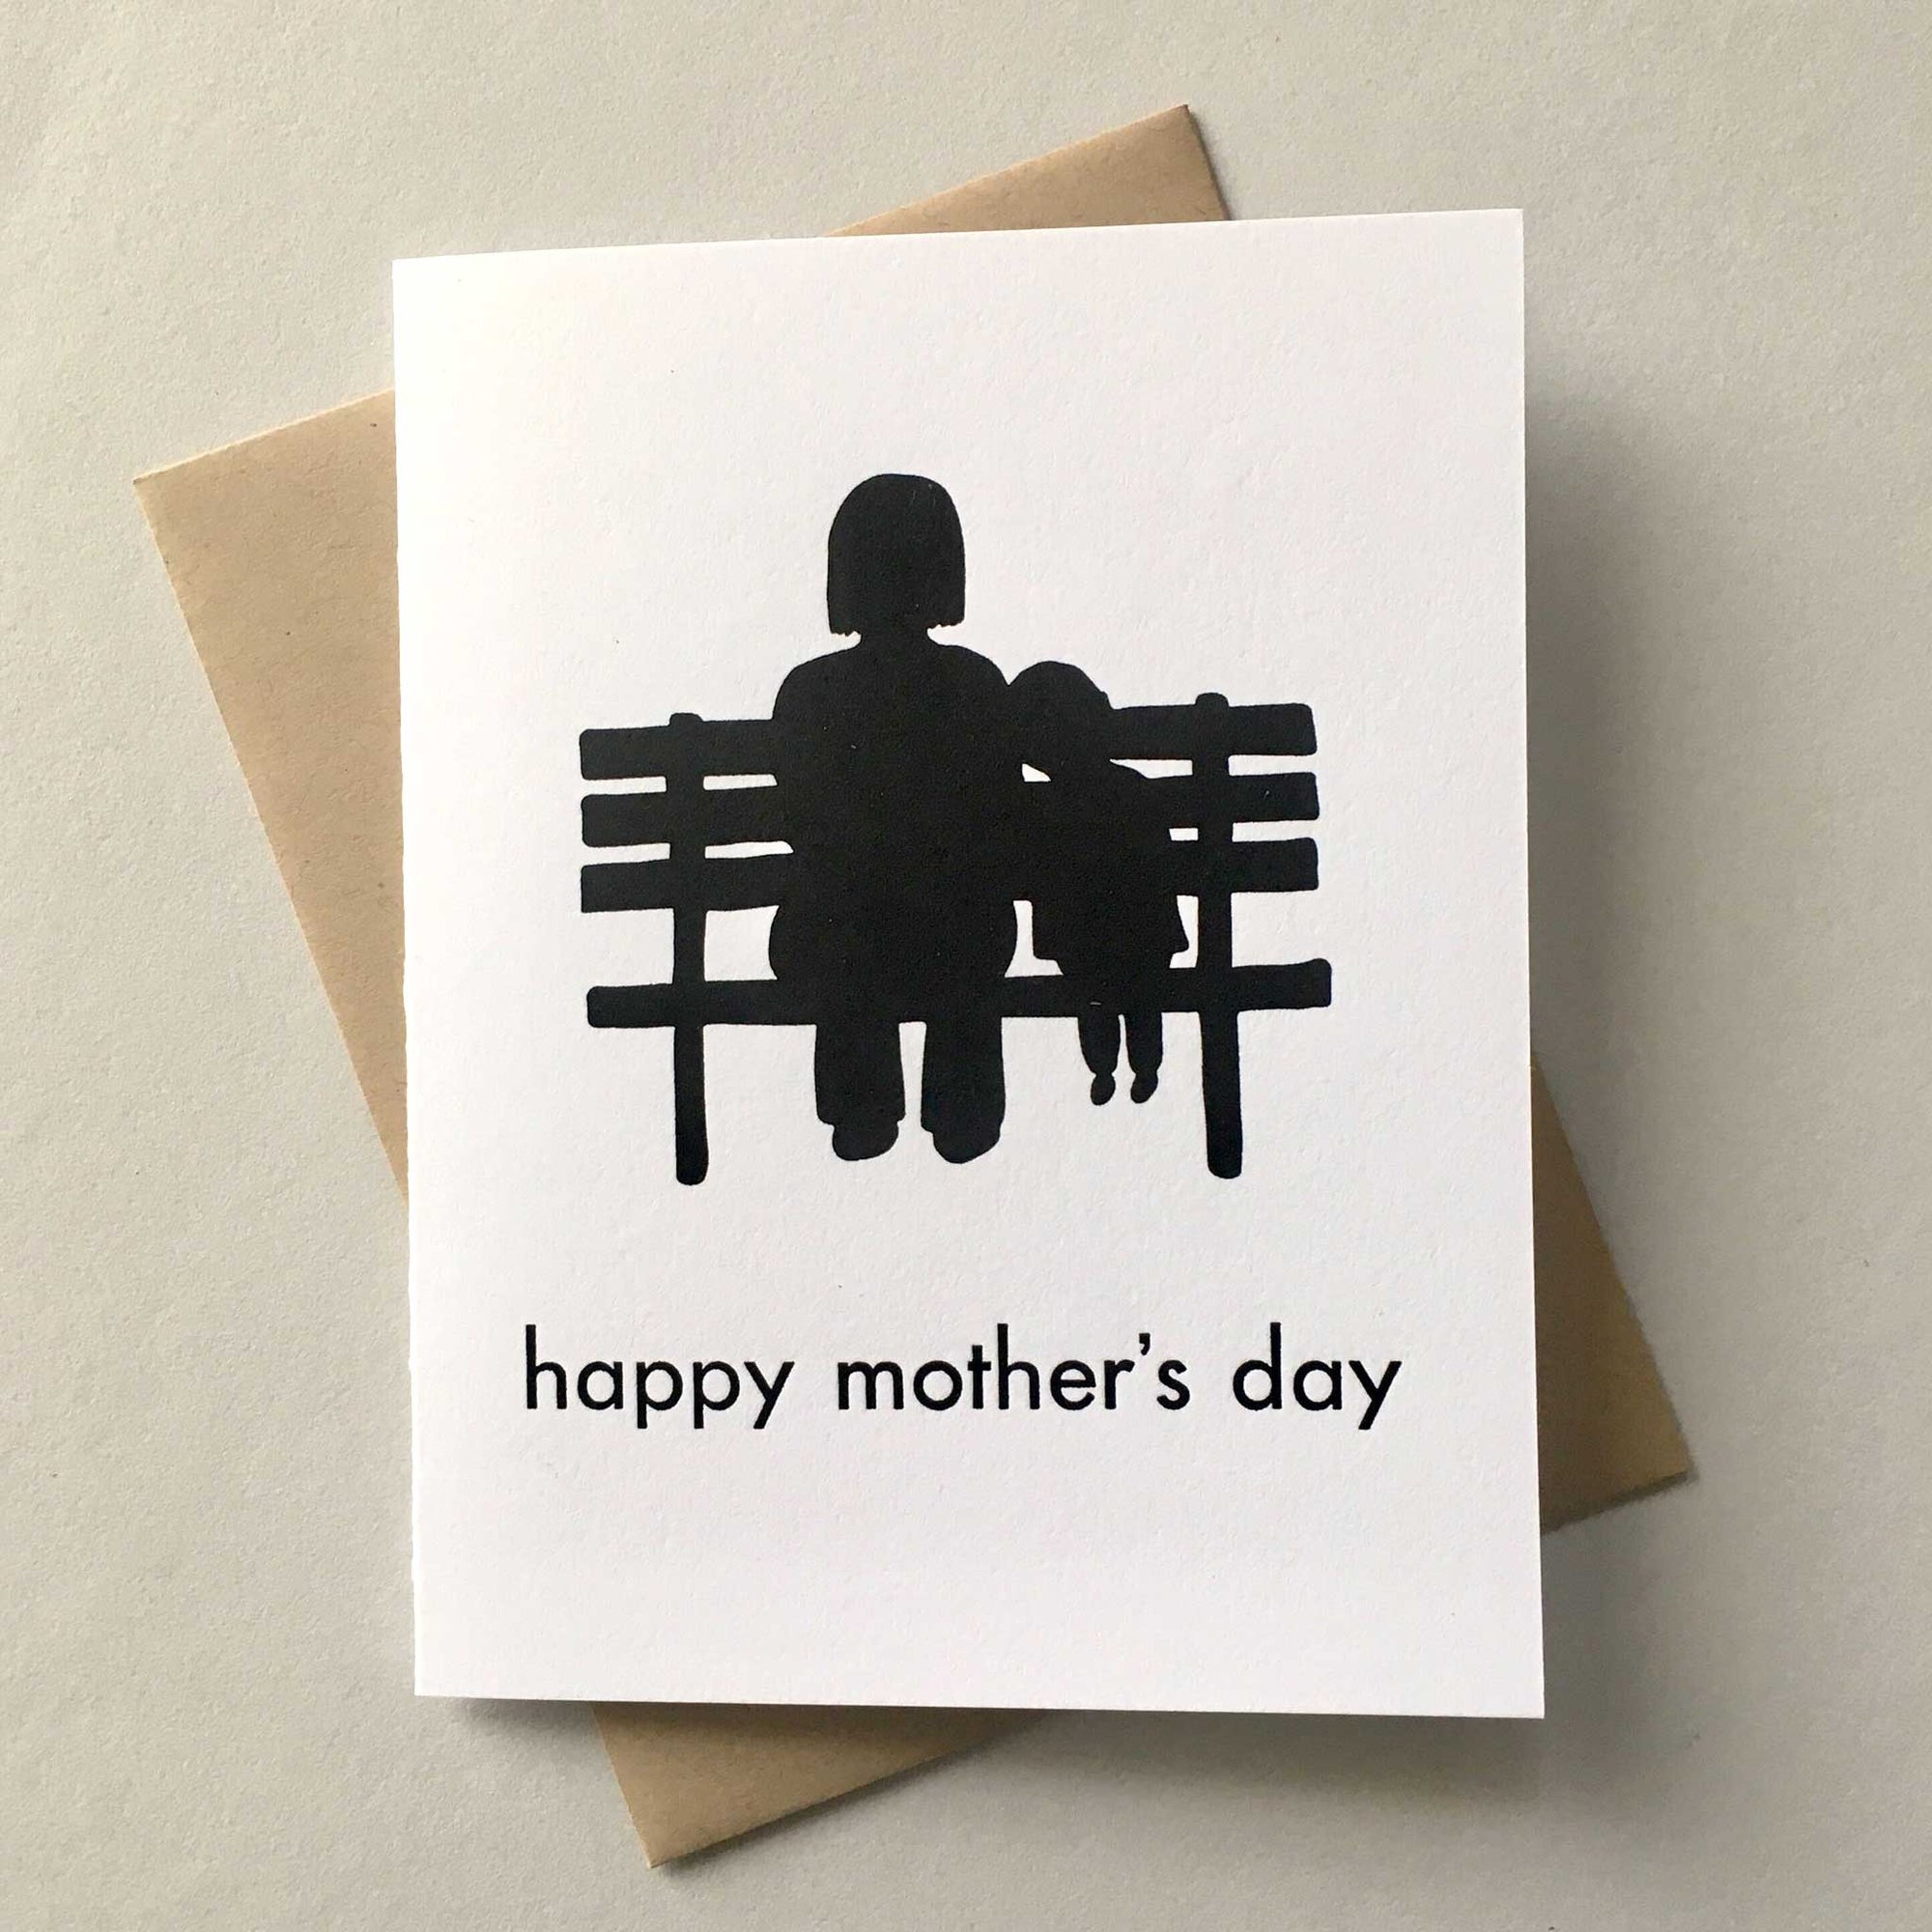 happy mother's day : Bremelo Press + Aya CoLab